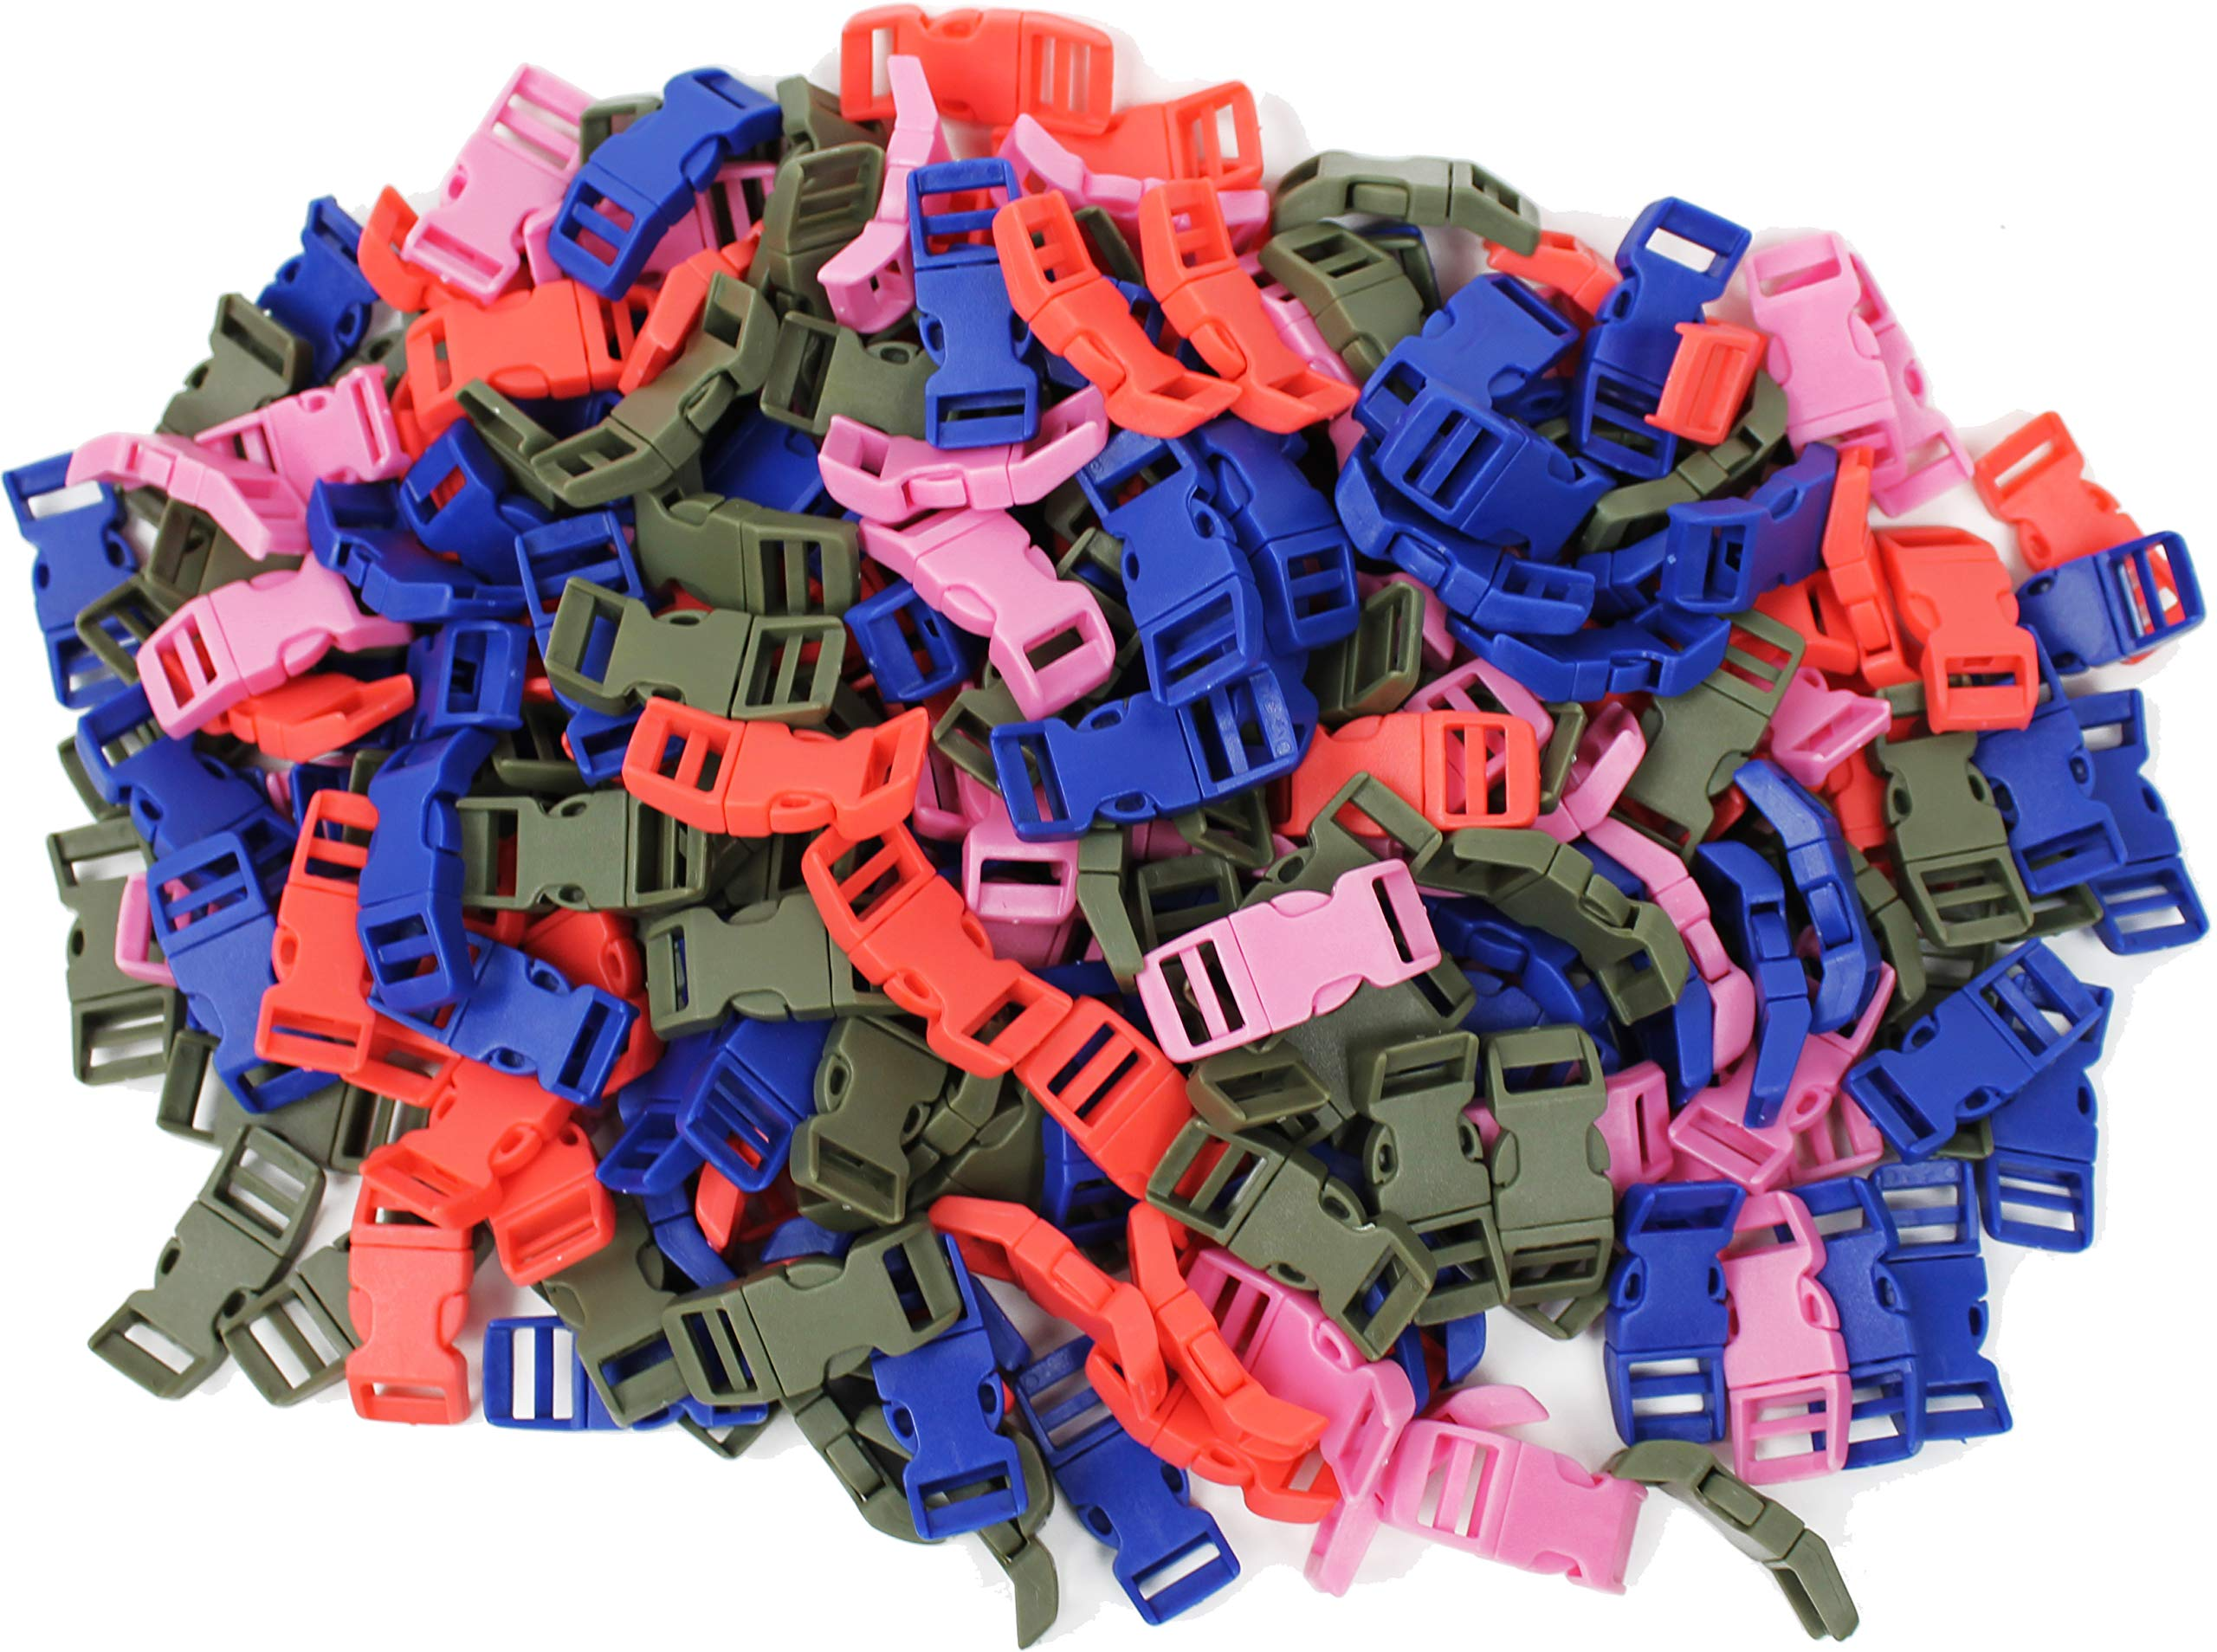 5/8'' Contoured Side Release Buckles Wholesale Lot Curved Plastic Buckles Assorted Solid Colors (Choose from 1,000, 5,000 or 10,000 Buckles) (5000) by Army Universe